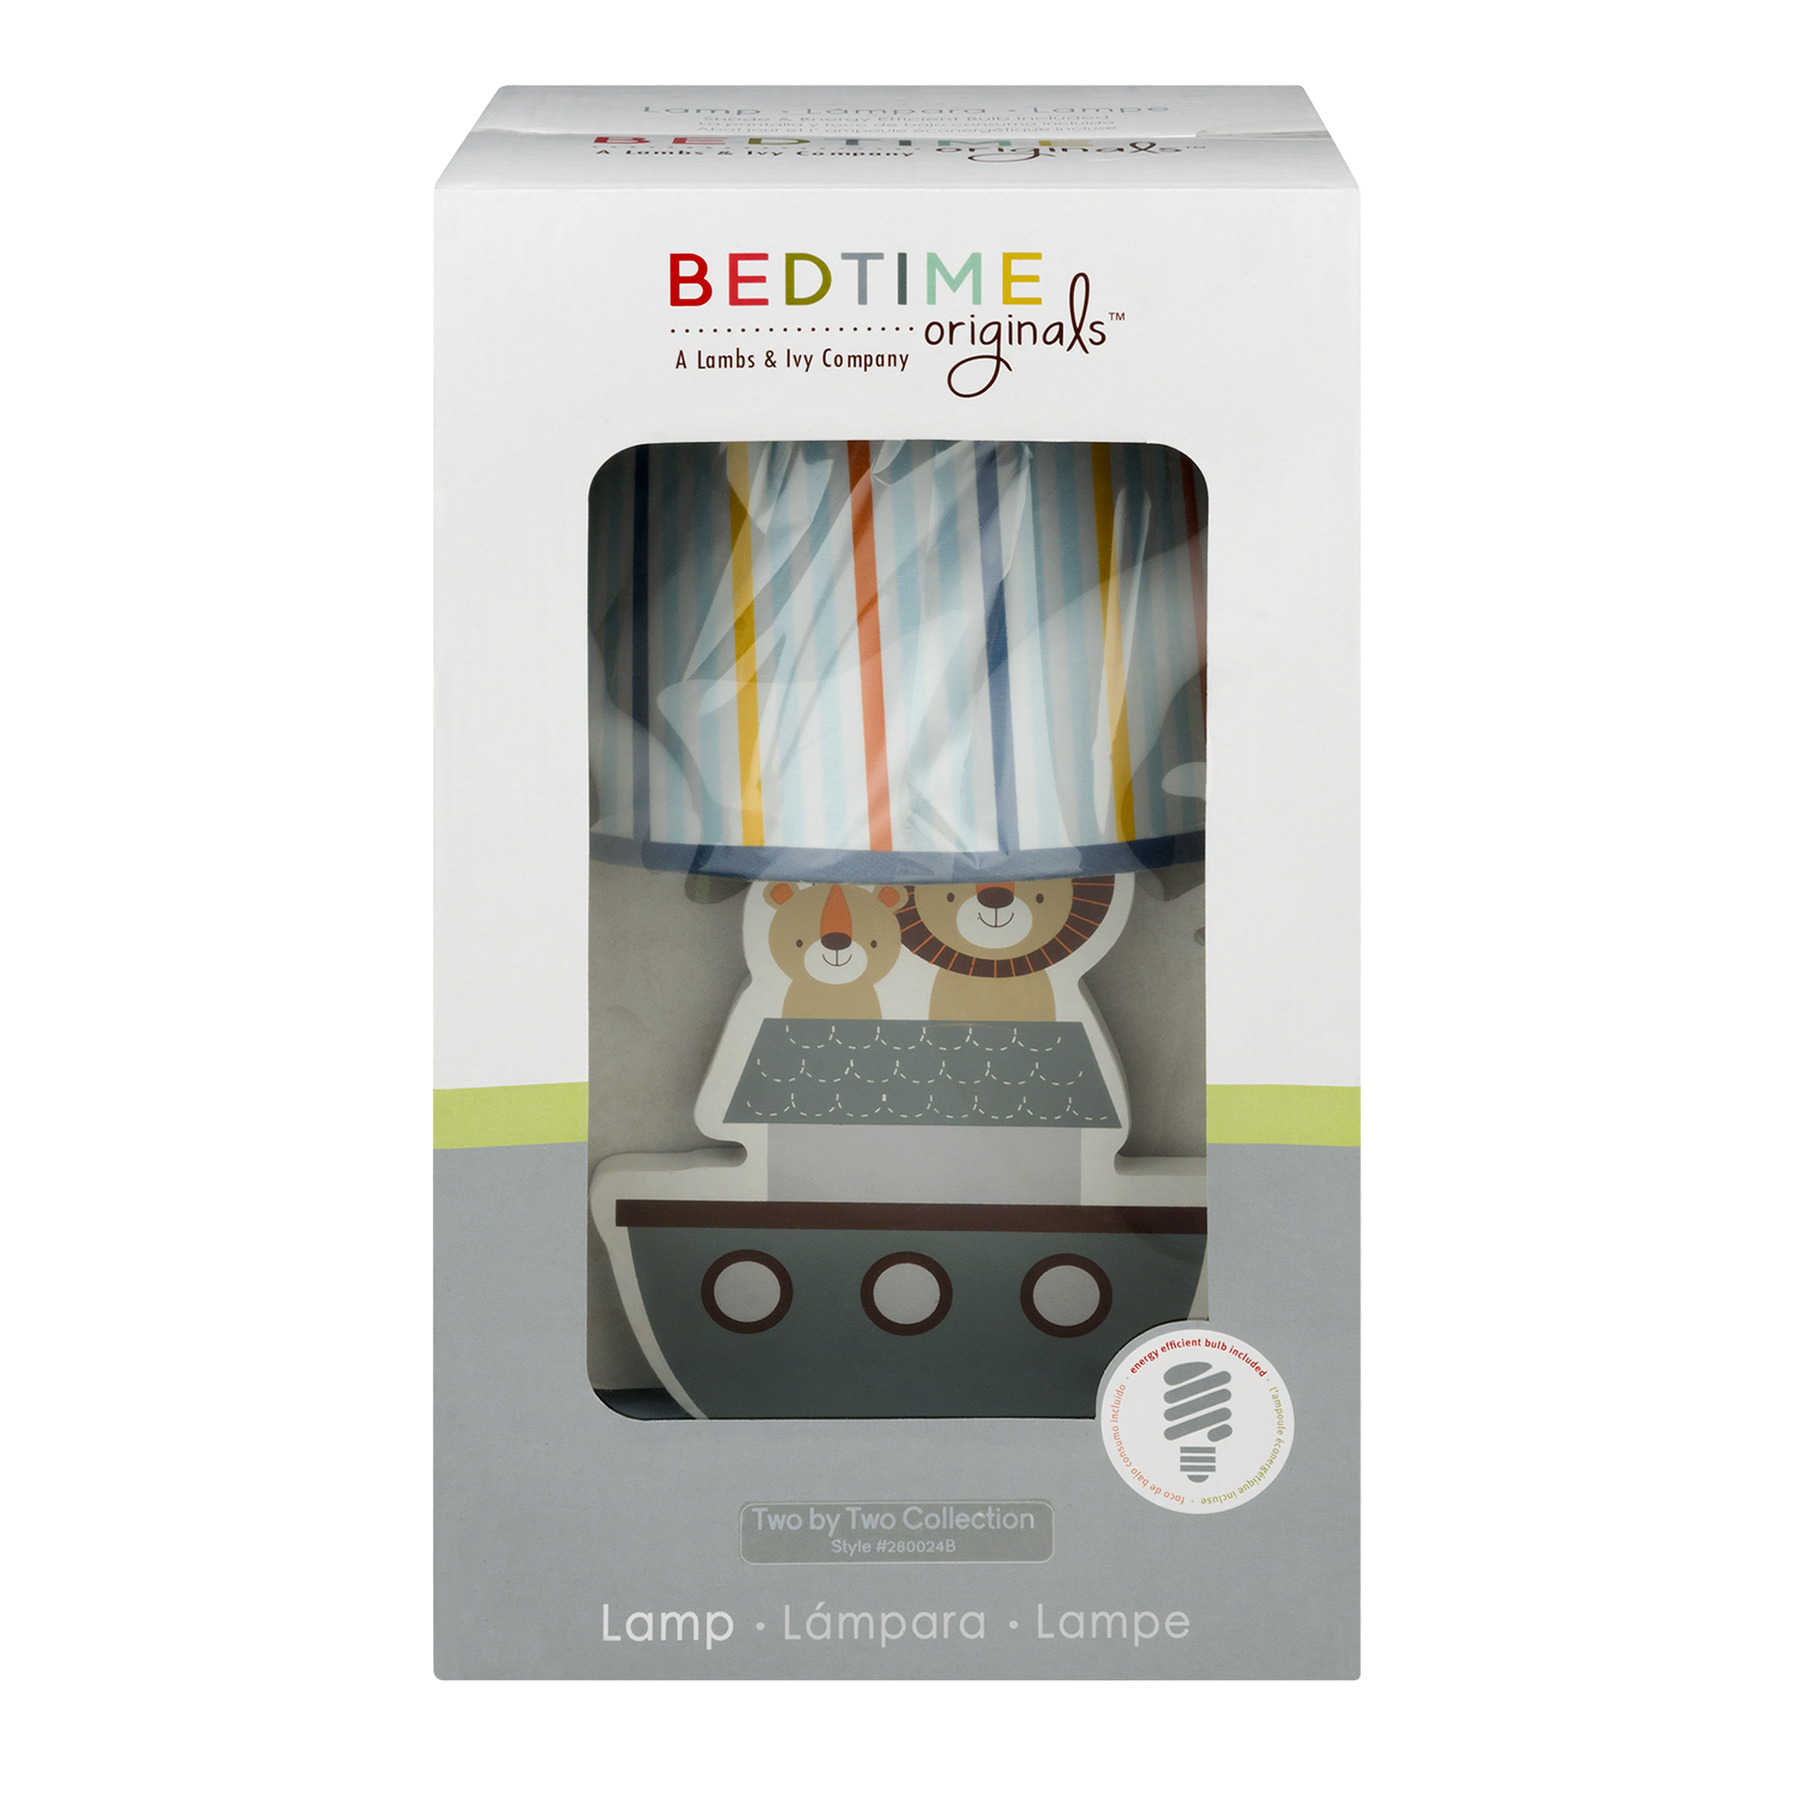 Bedtime Originals Lamp Two by Two  -1 CT1.0 CT